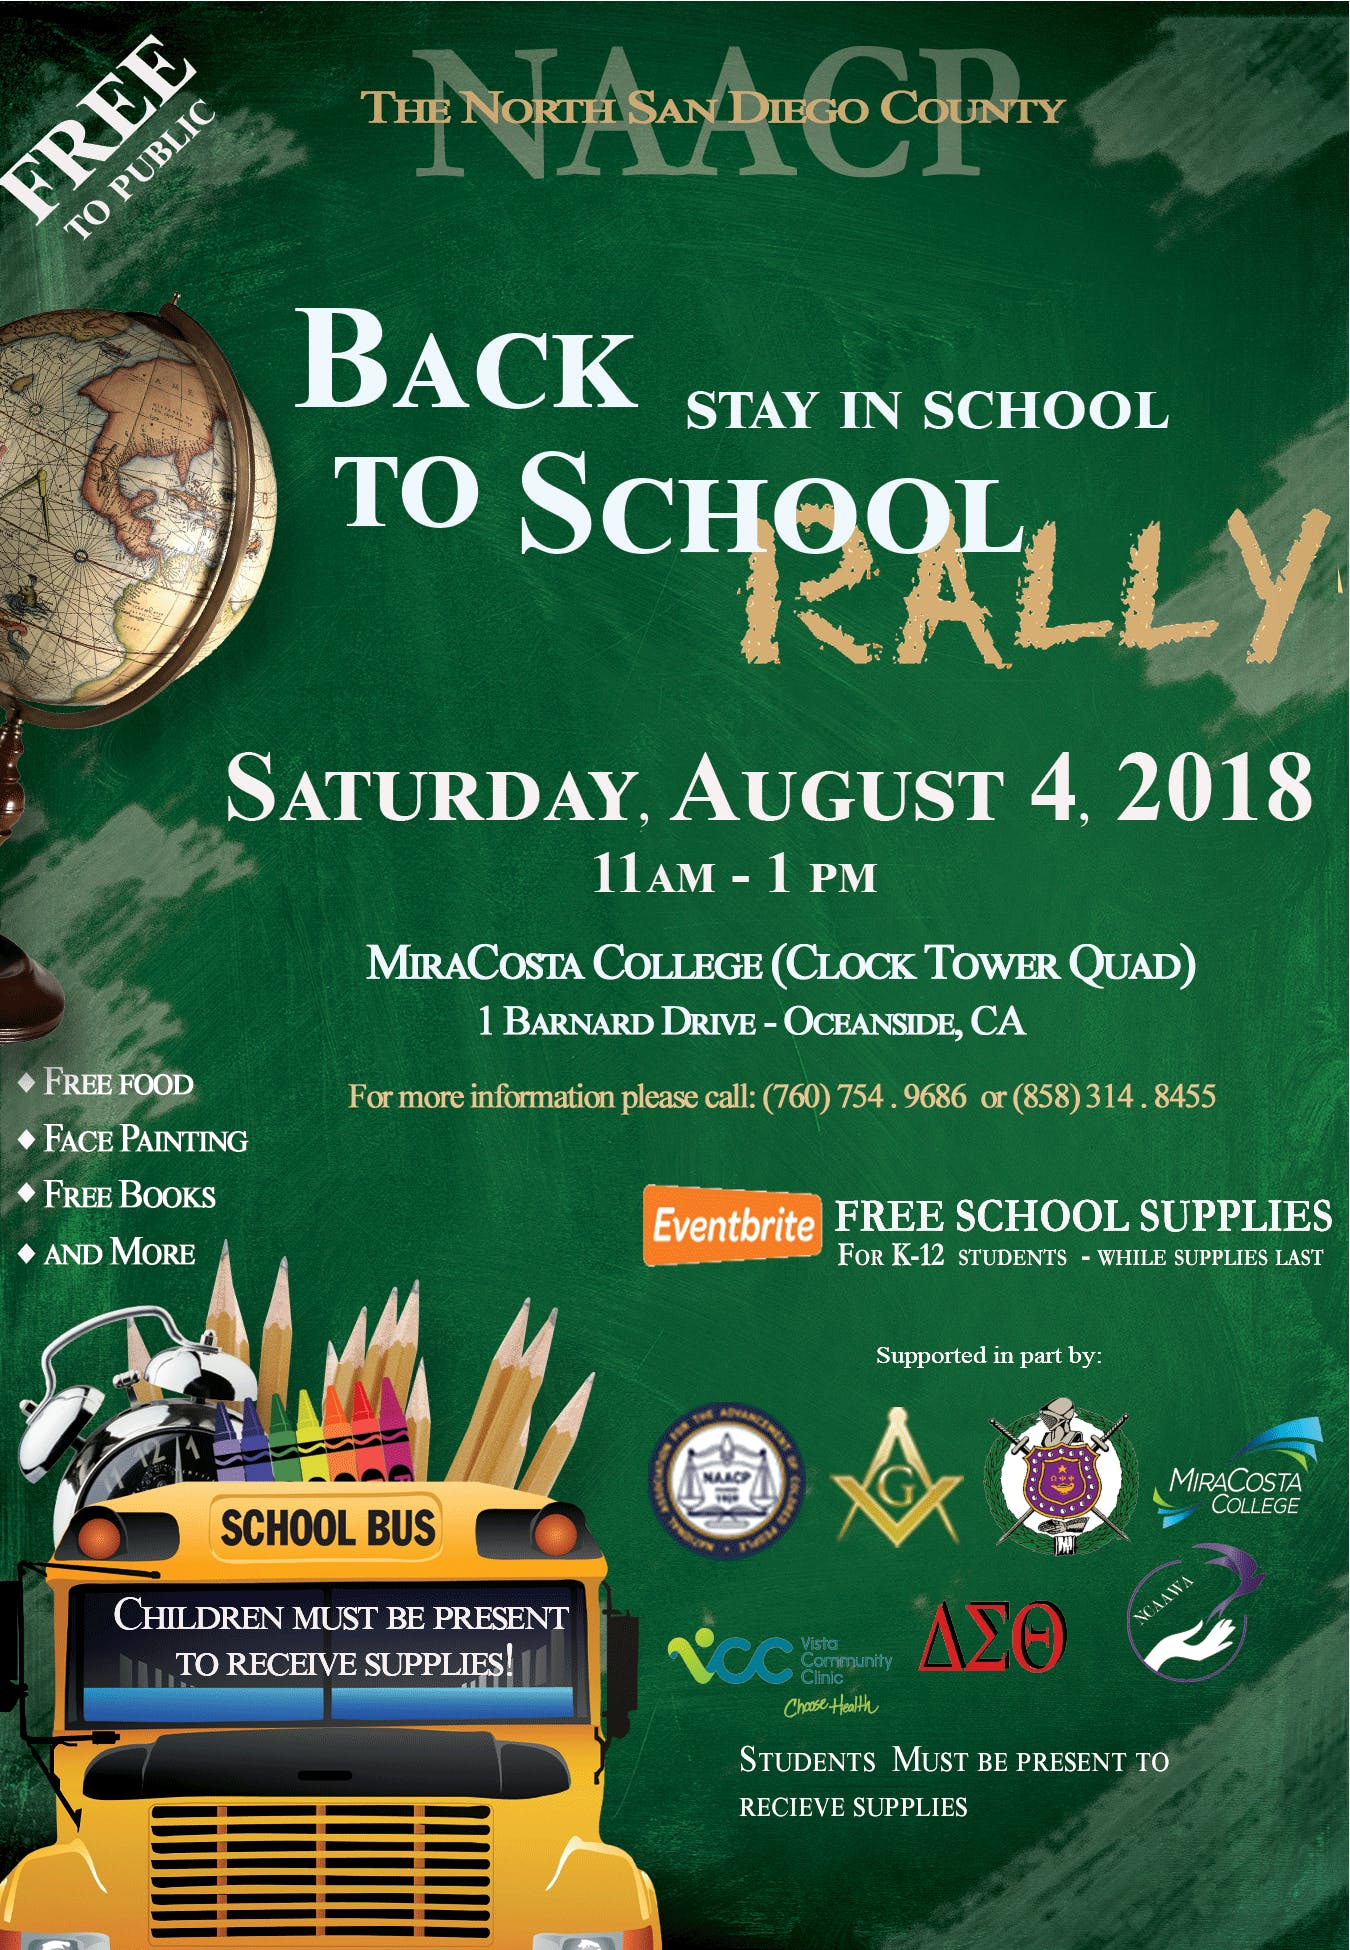 2018 BACK TO SCHOOL STAY IN SCHOOL - BACKPACK GIVE-AWAY at MiraCosta